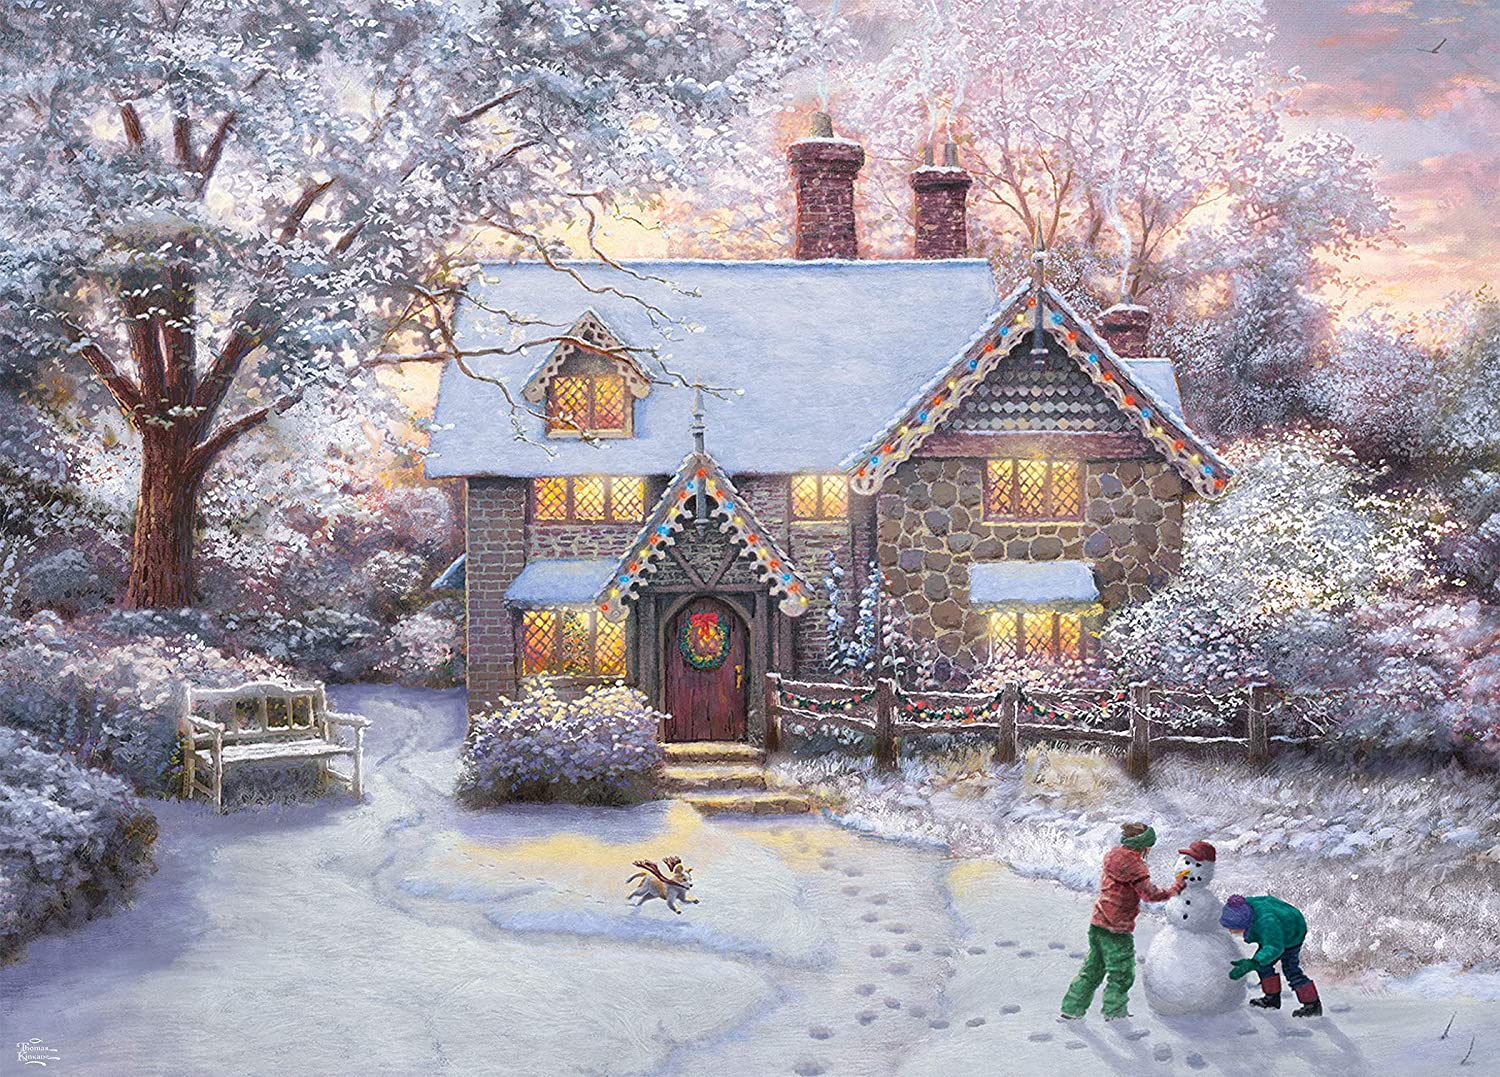 Thomas Kinkade Christmas Cottage 2020 Amazon.com: Thomas Kinkade Christmas at Gingerbread Cottage Puzzle